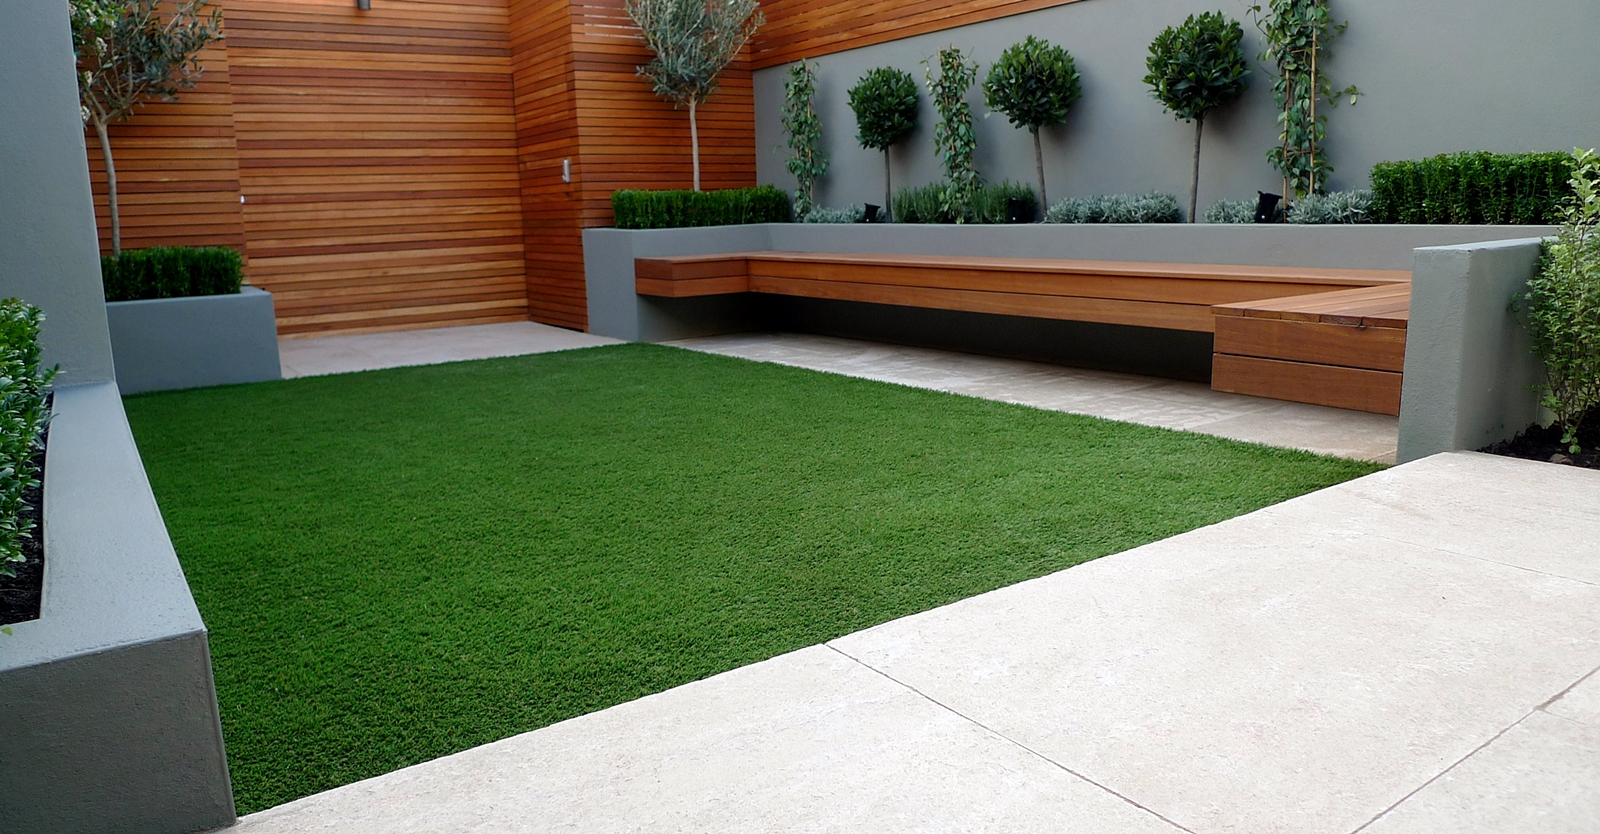 Modern contemporary garden design landscaping clapham for Contemporary garden designs and ideas